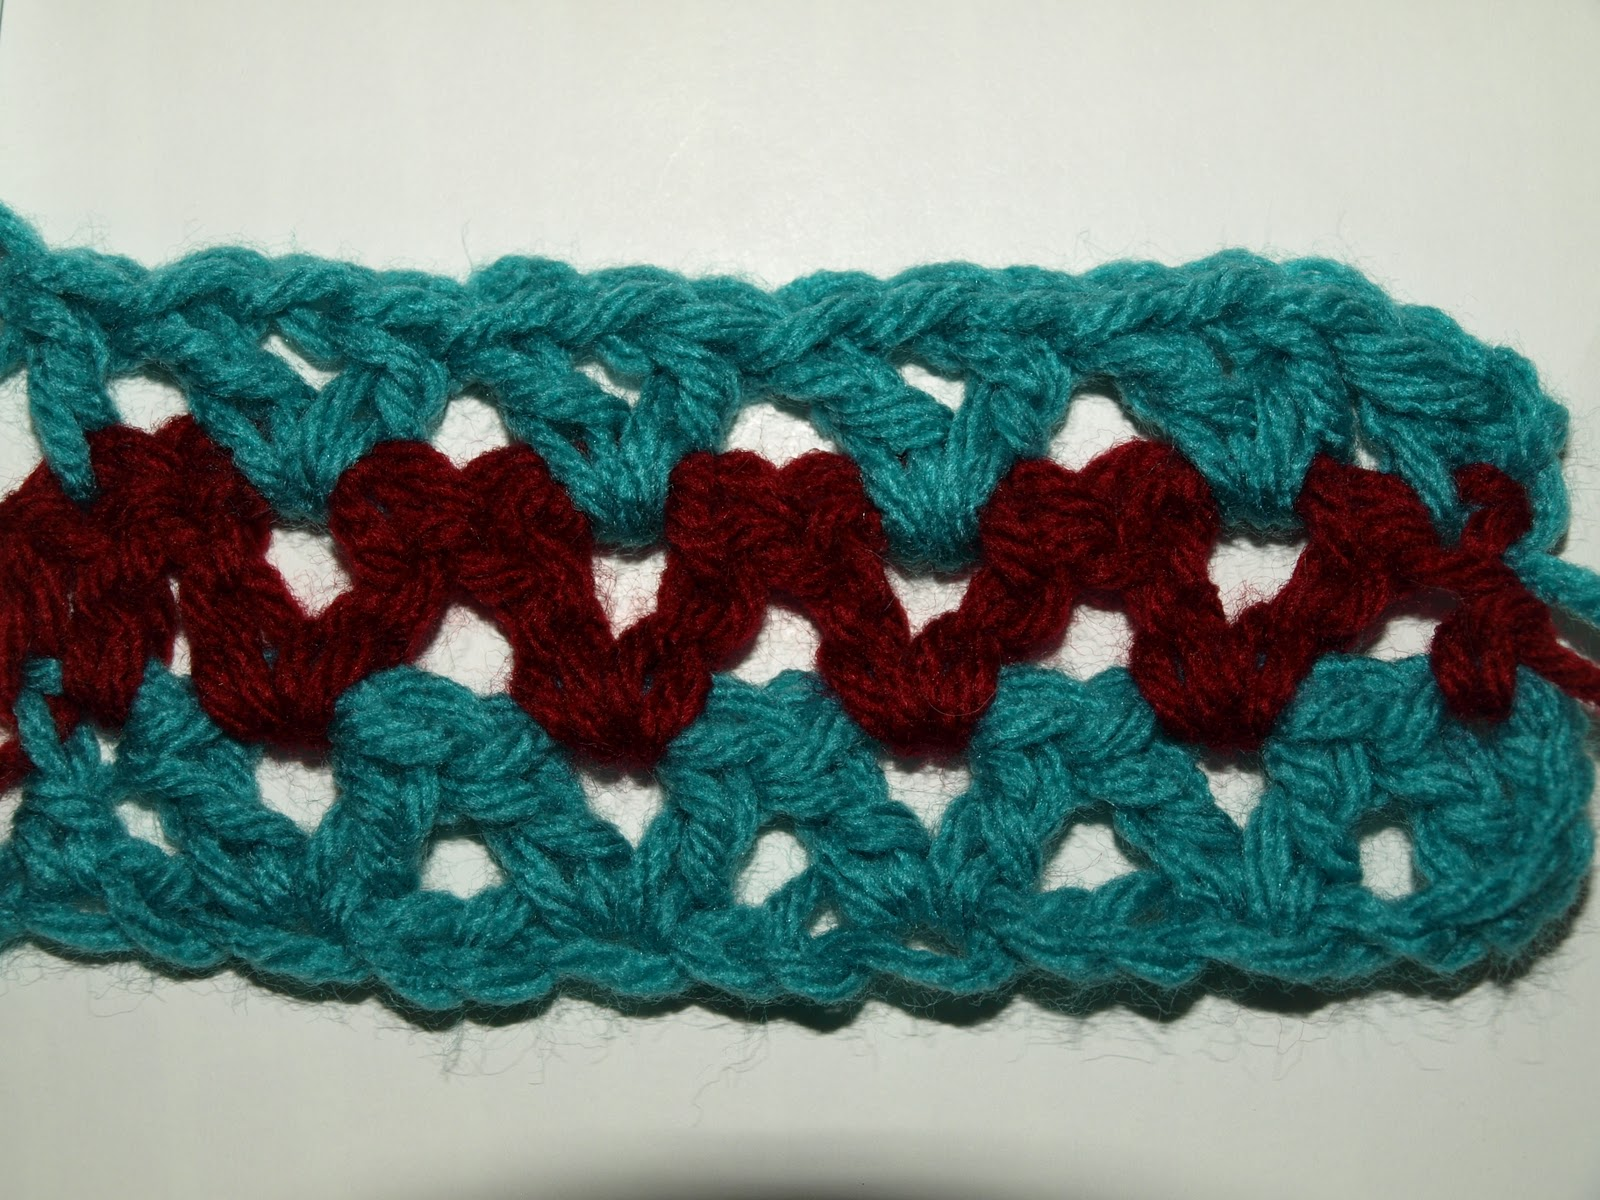 Crocheting Double Stitch : CrochetByKarin: Double Crochet V Stitch